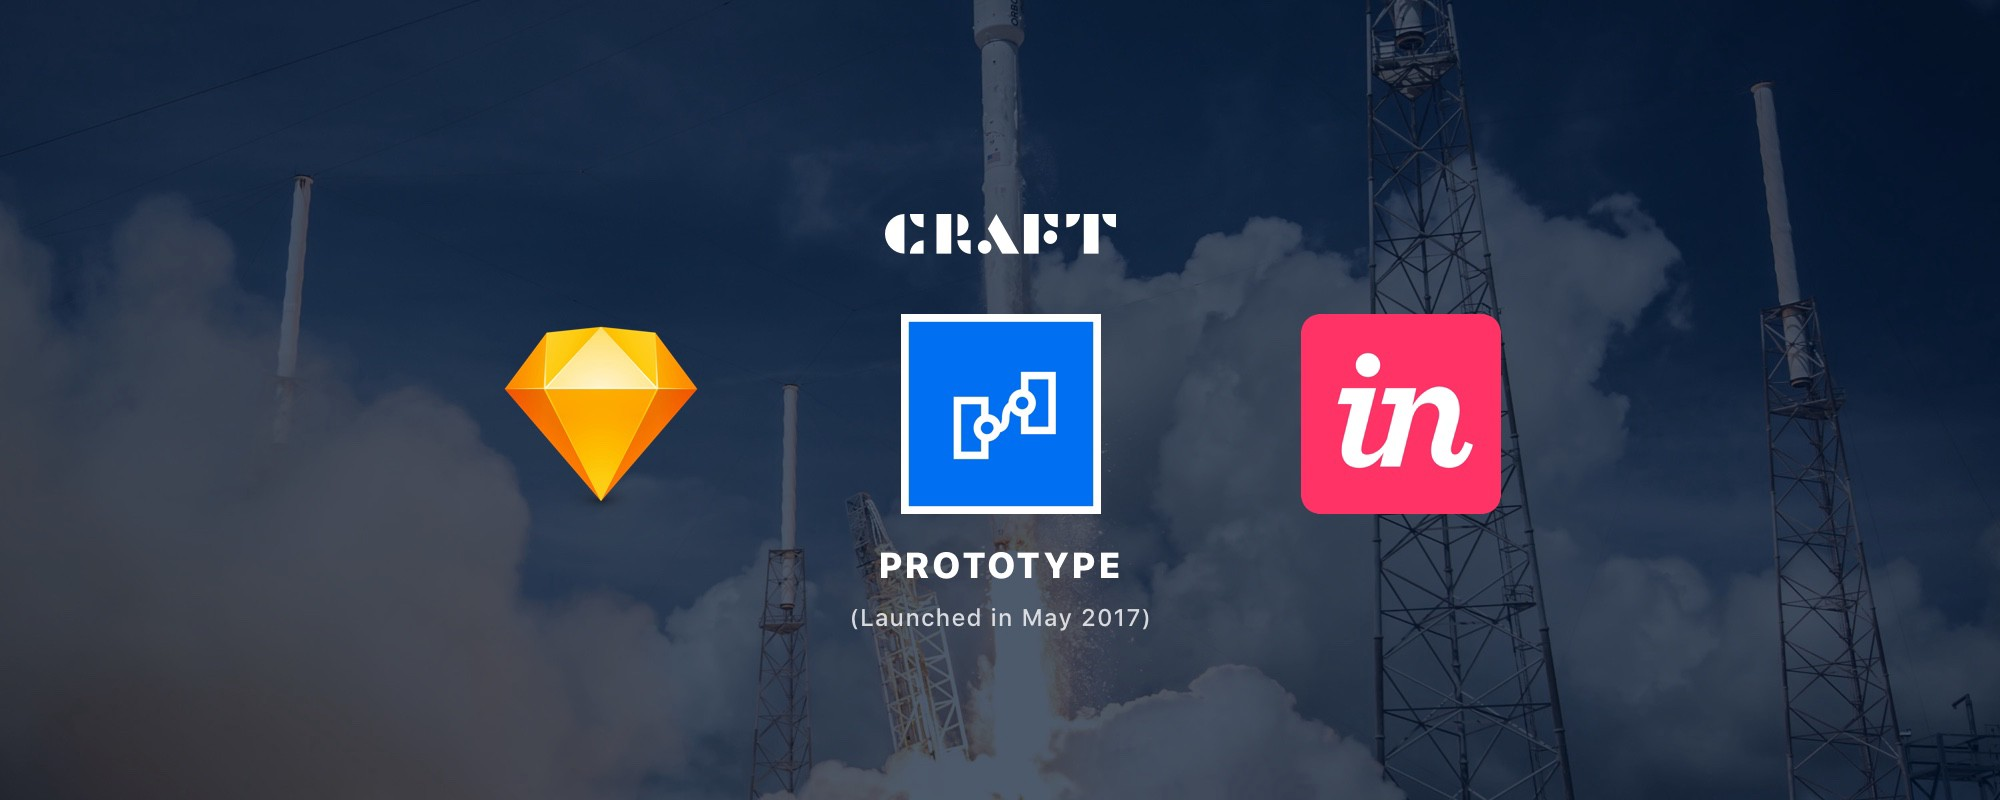 Groovy Prototyping In Sketch Is Officially Available Now And Here Is My Wiring 101 Cabaharperaodorg